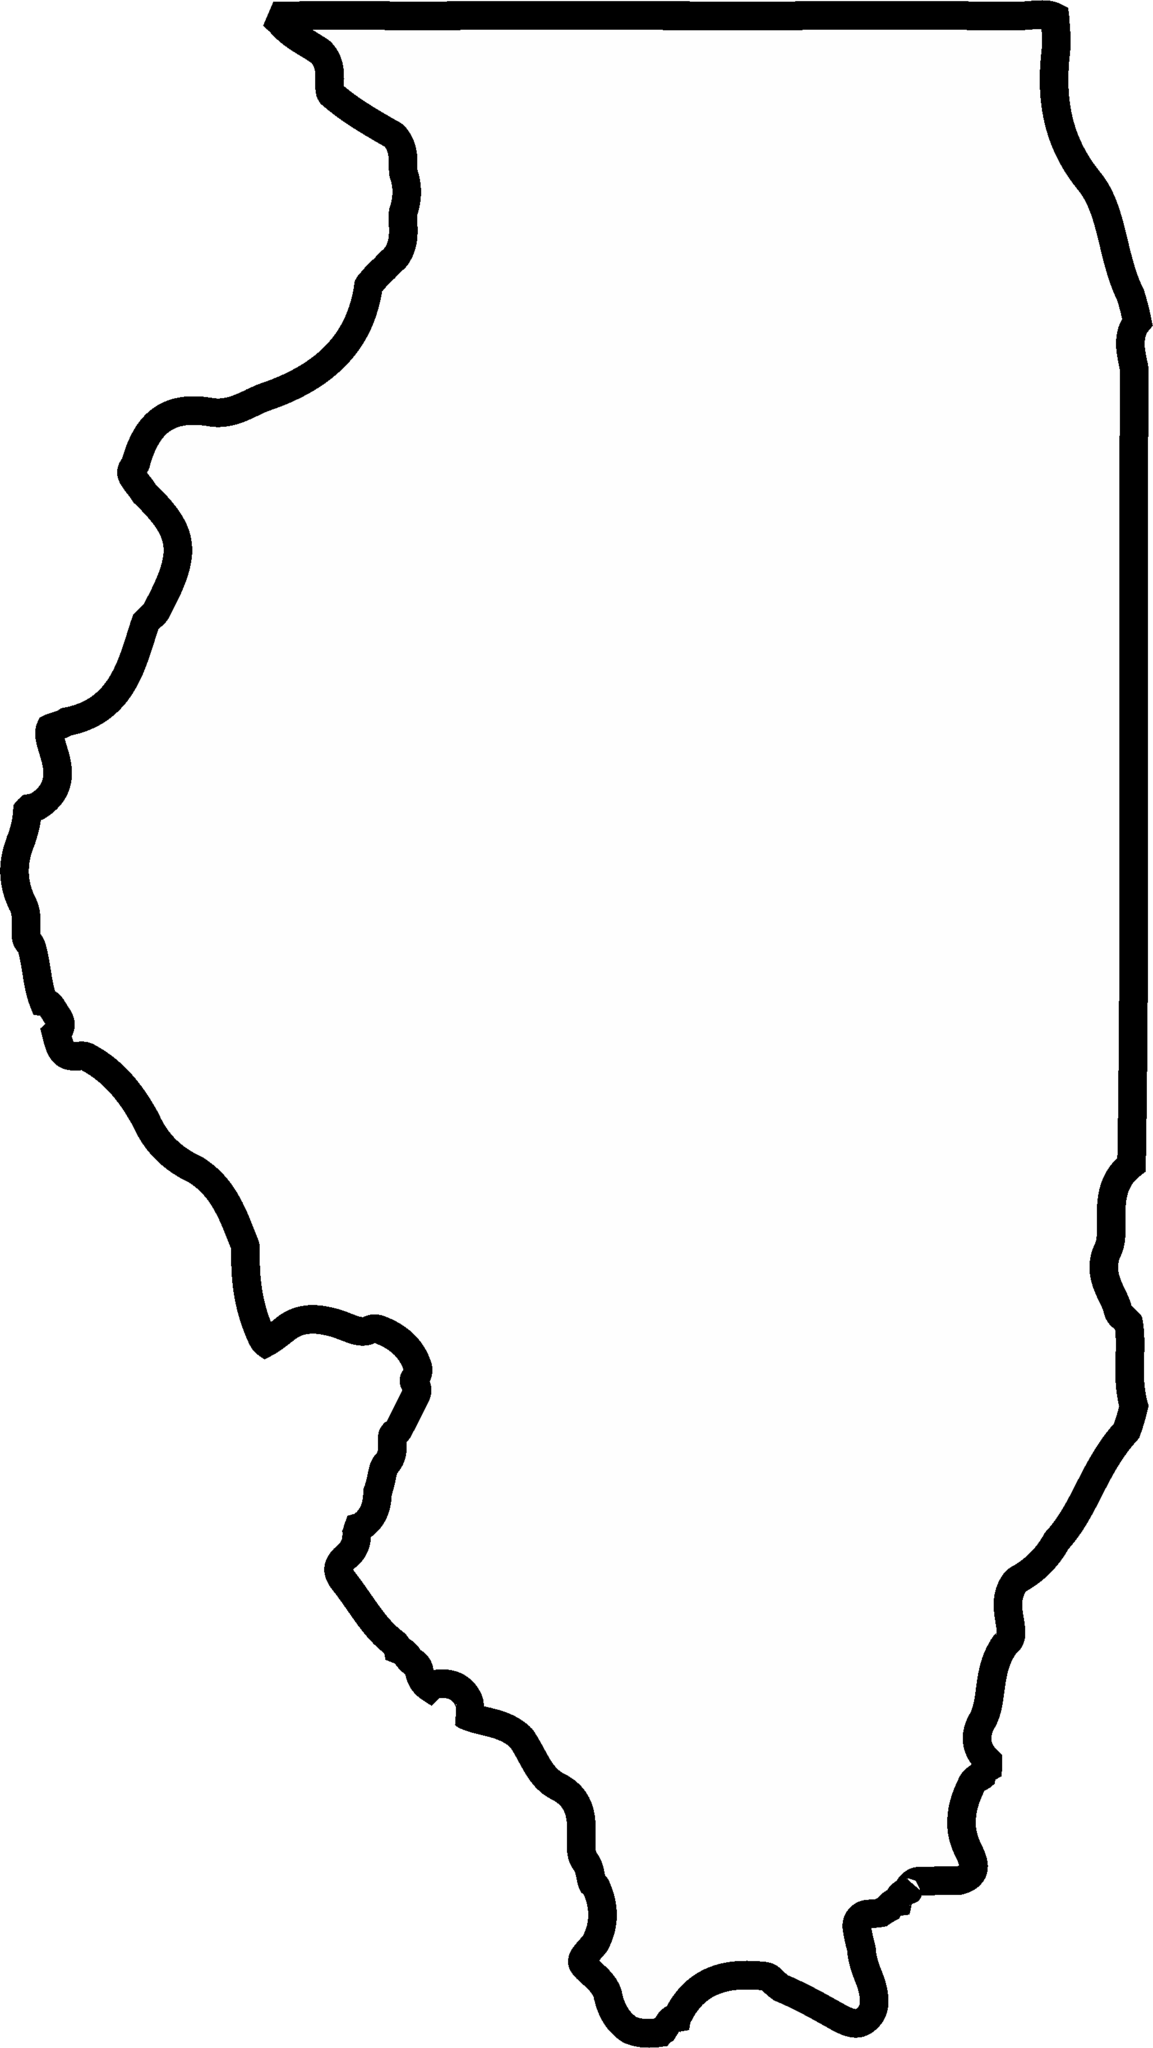 Illinois Outline Rubber Stamp State Rubber Stamps